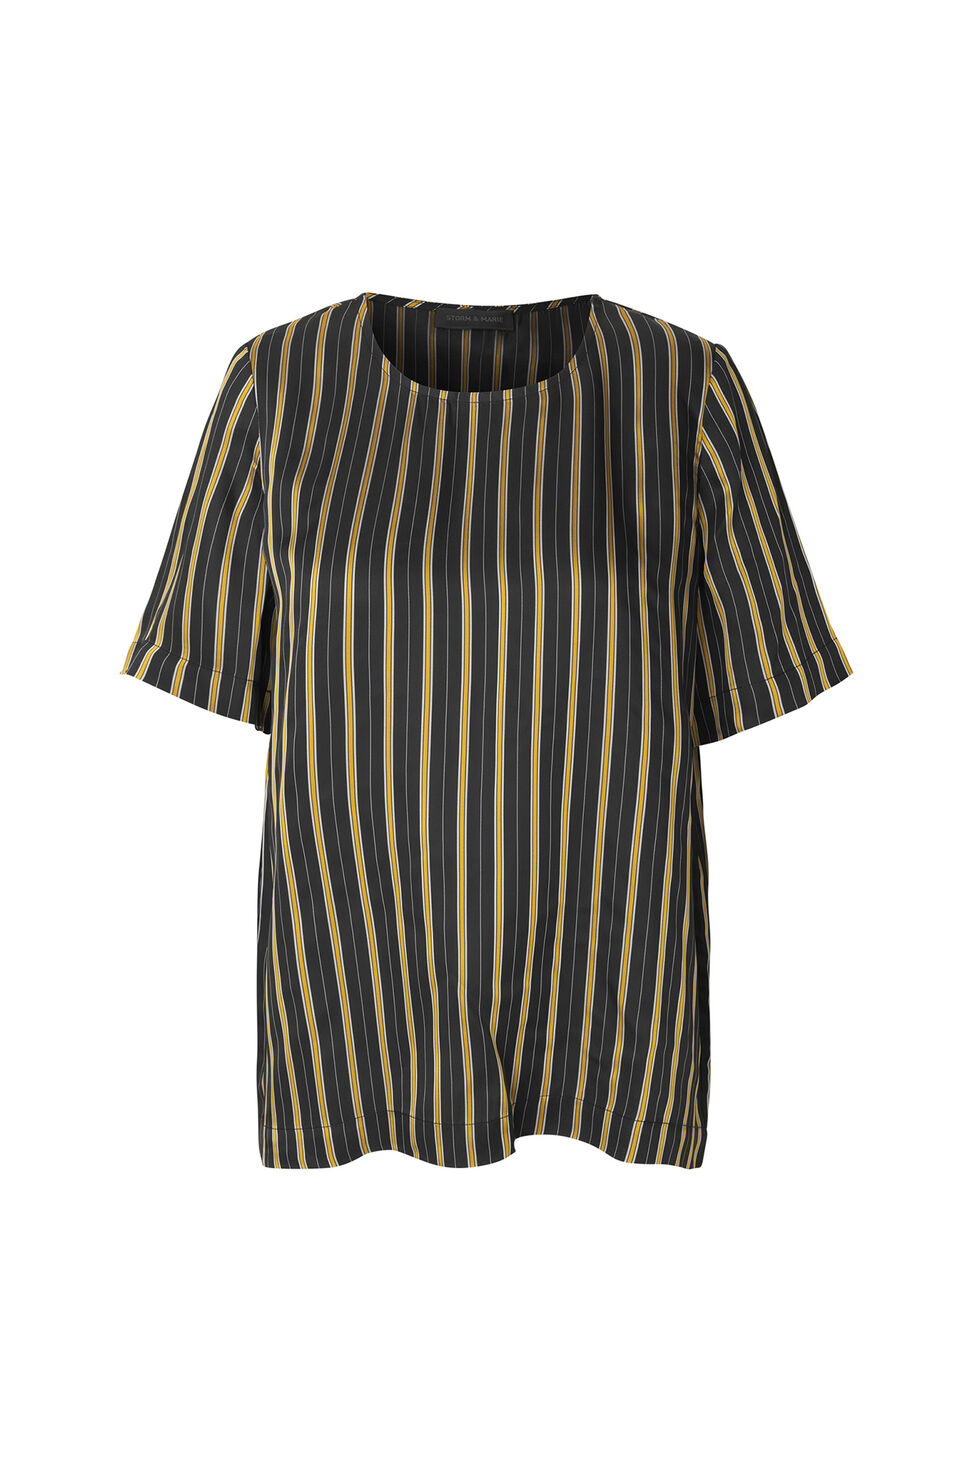 Mapel-ss 22689, STRIPES